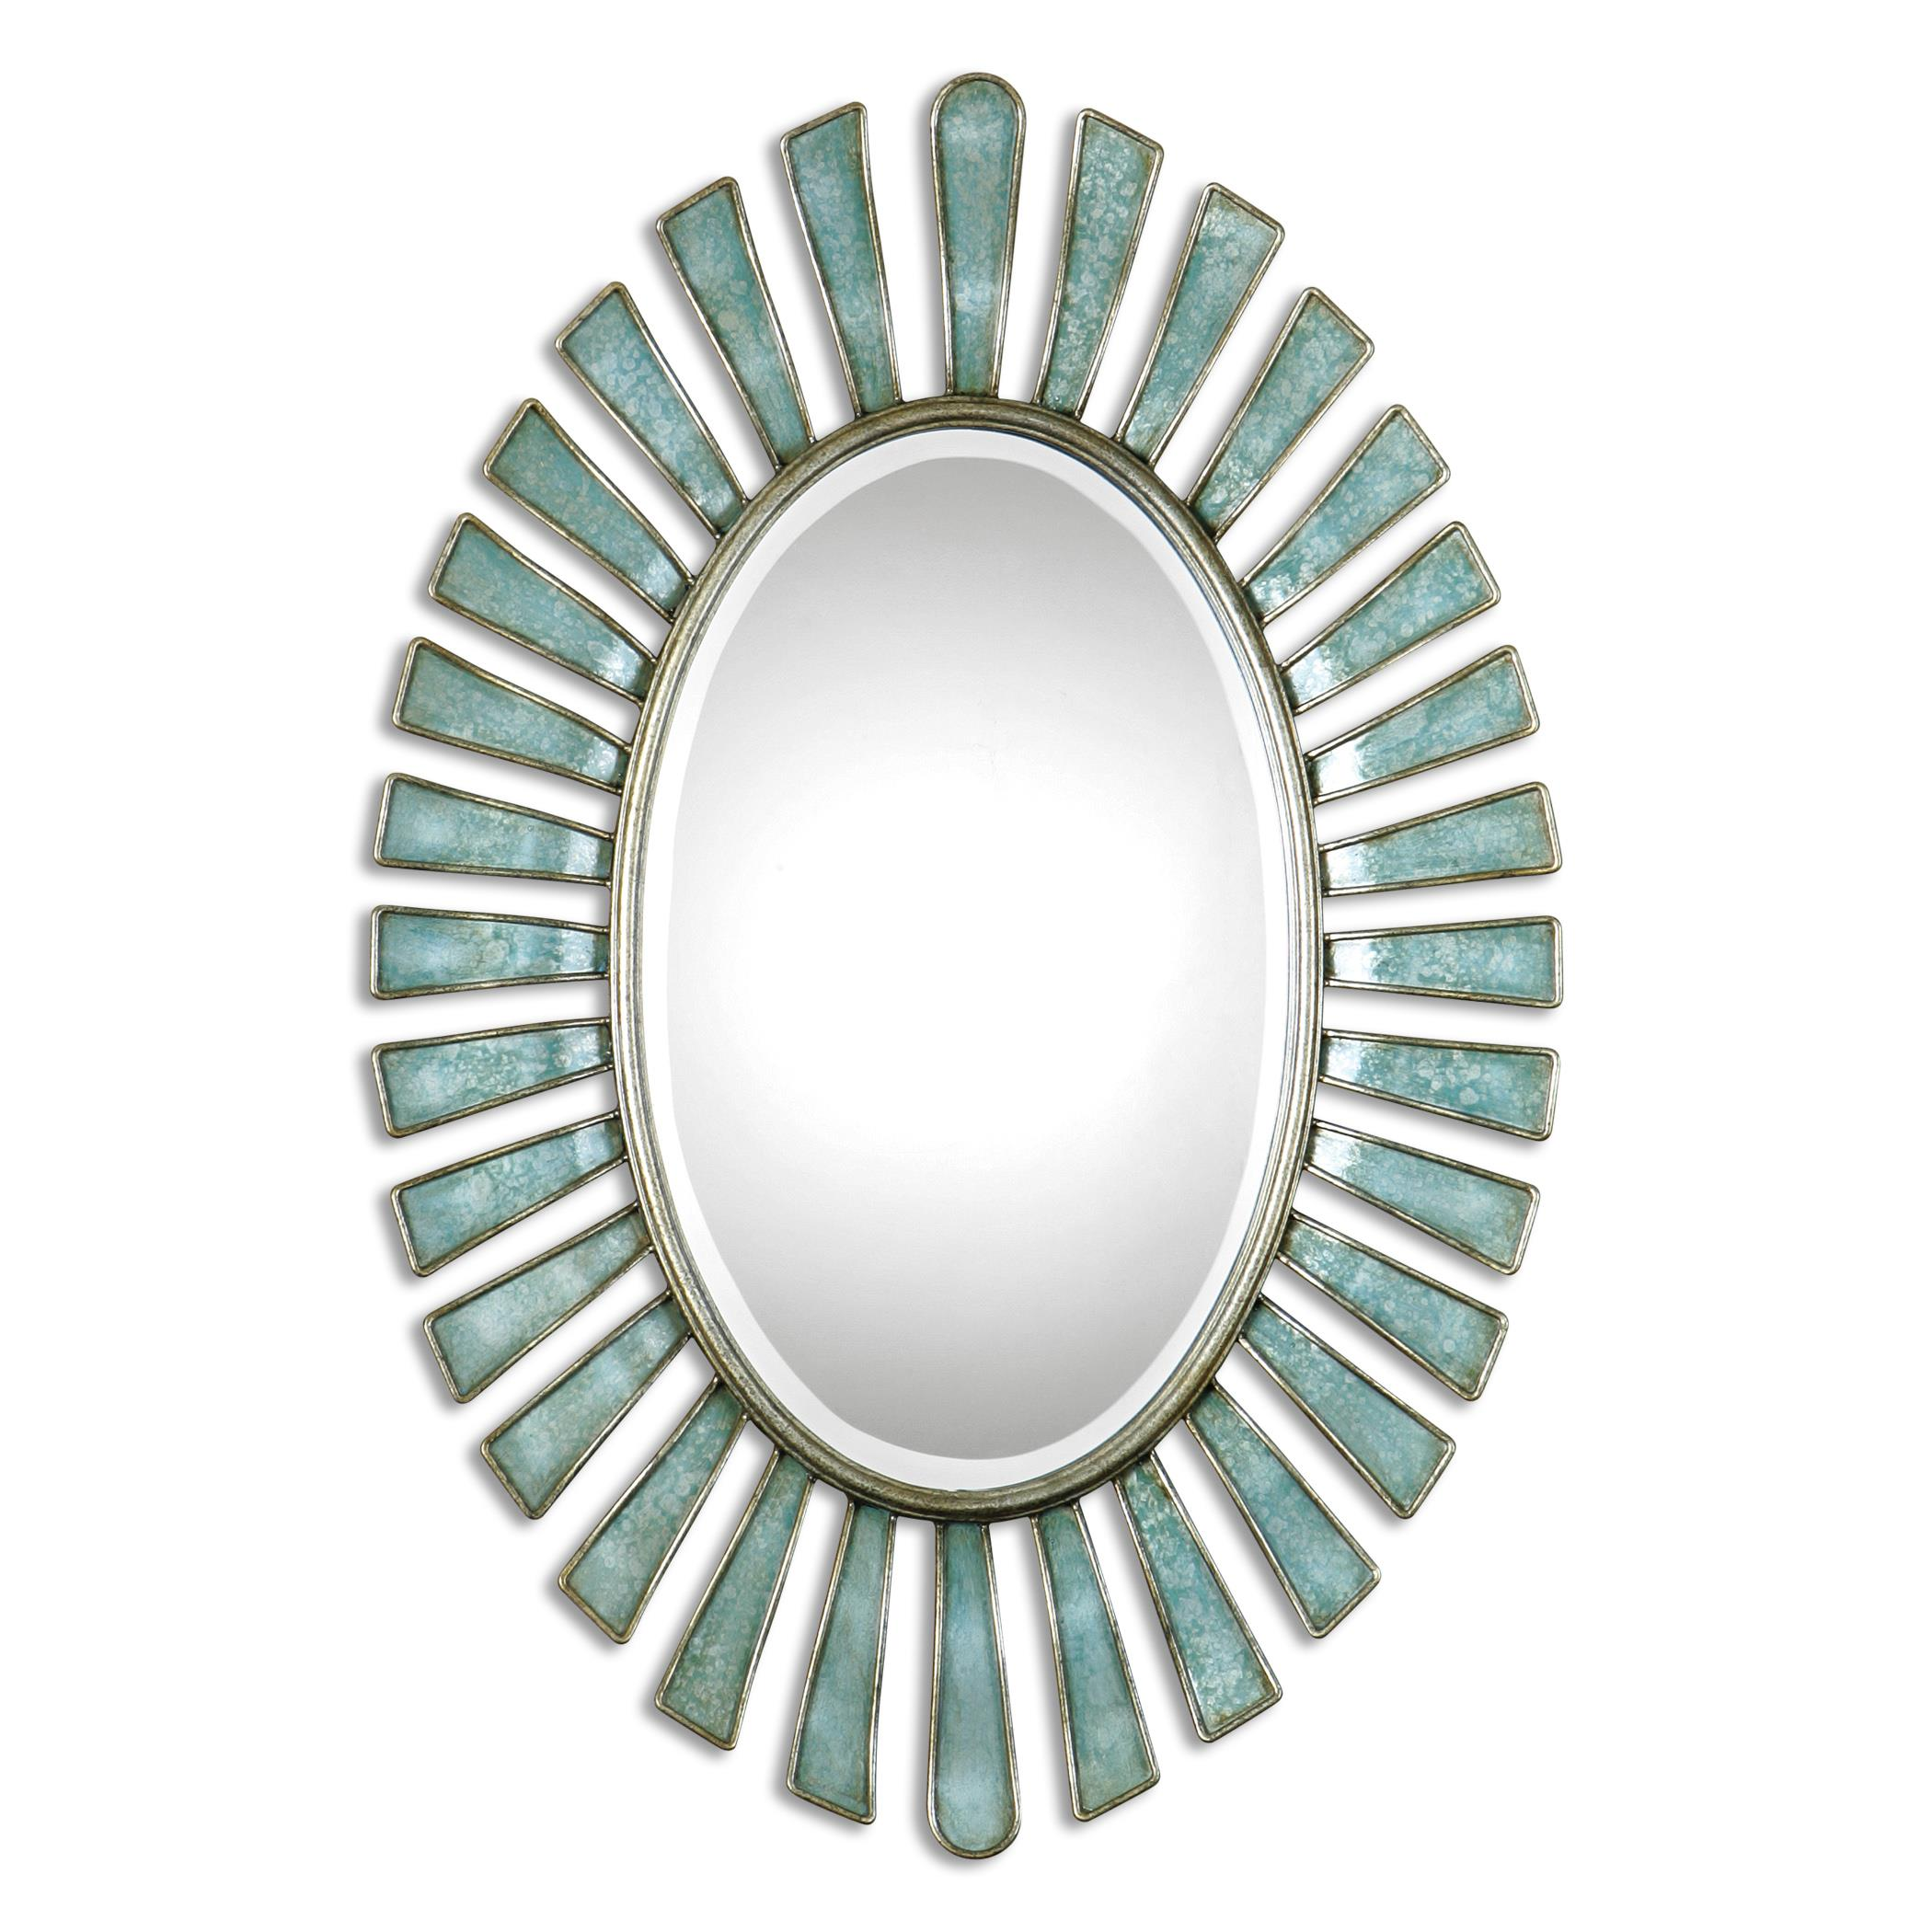 Uttermost Mirrors Morvoren Blue-Gray Oval Mirror - Item Number: 08141